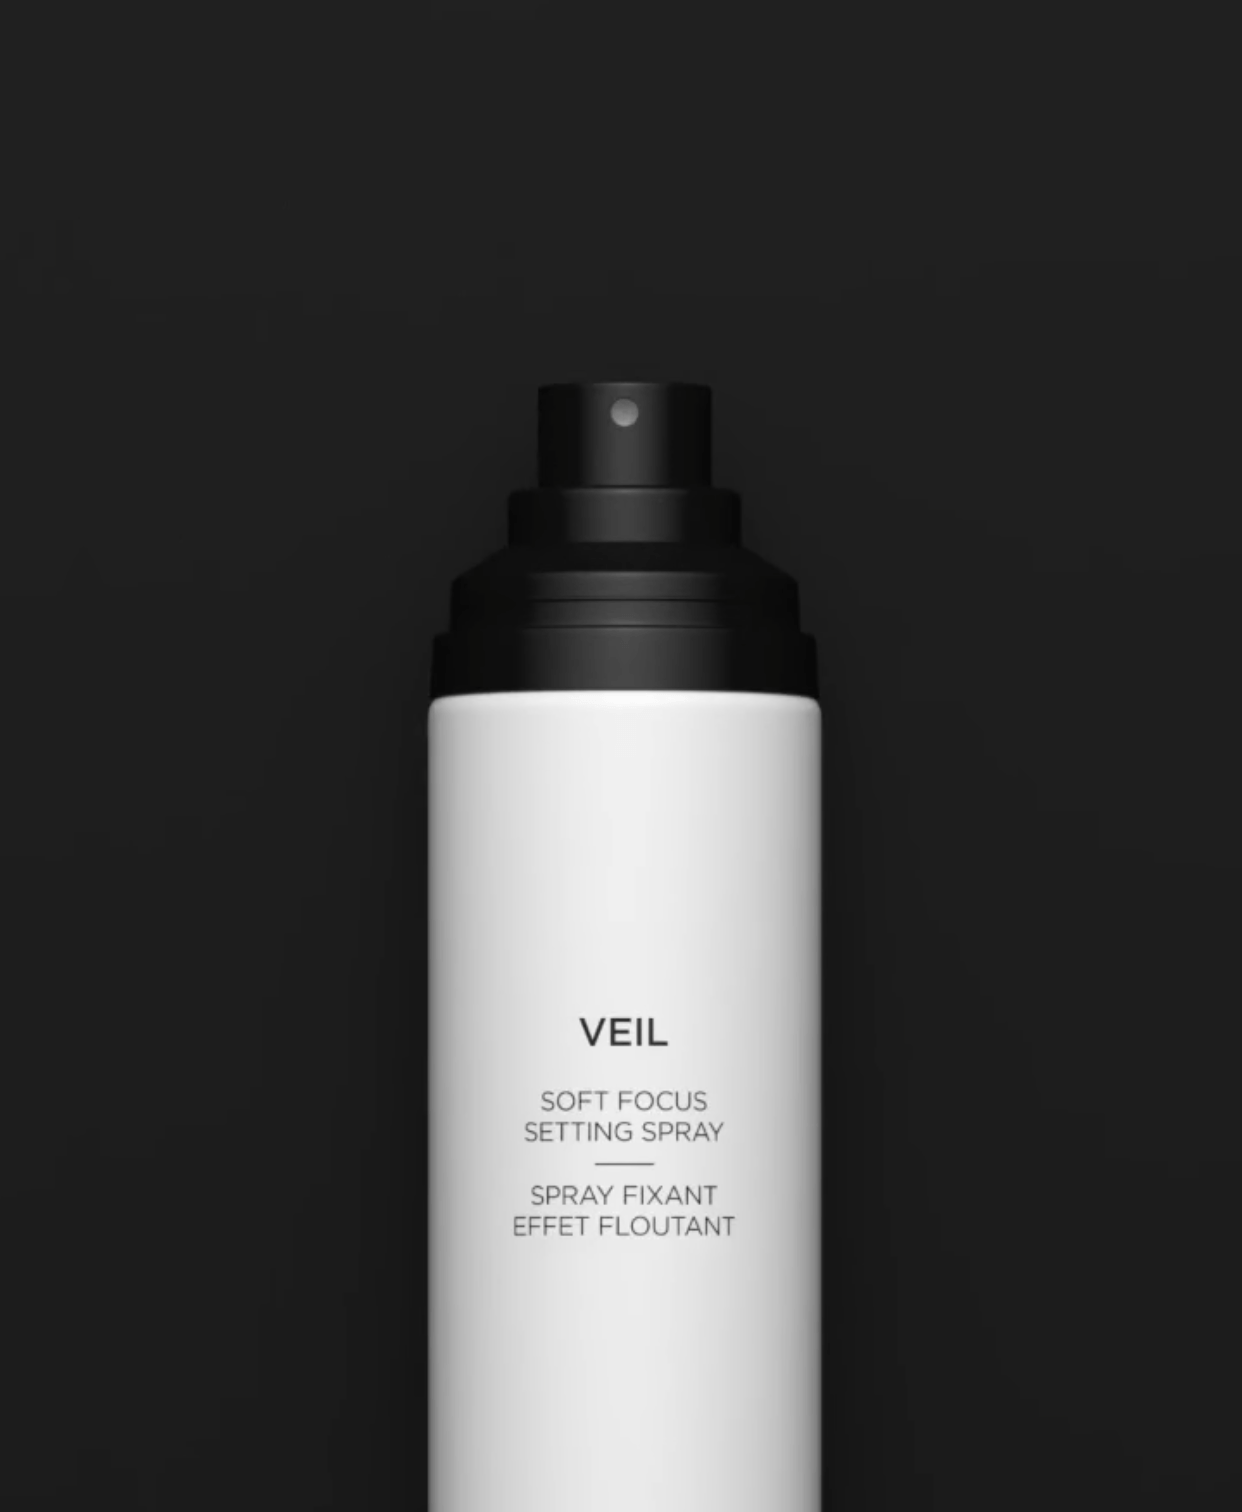 Veil Soft Focus Setting Spray by Hourglass #10